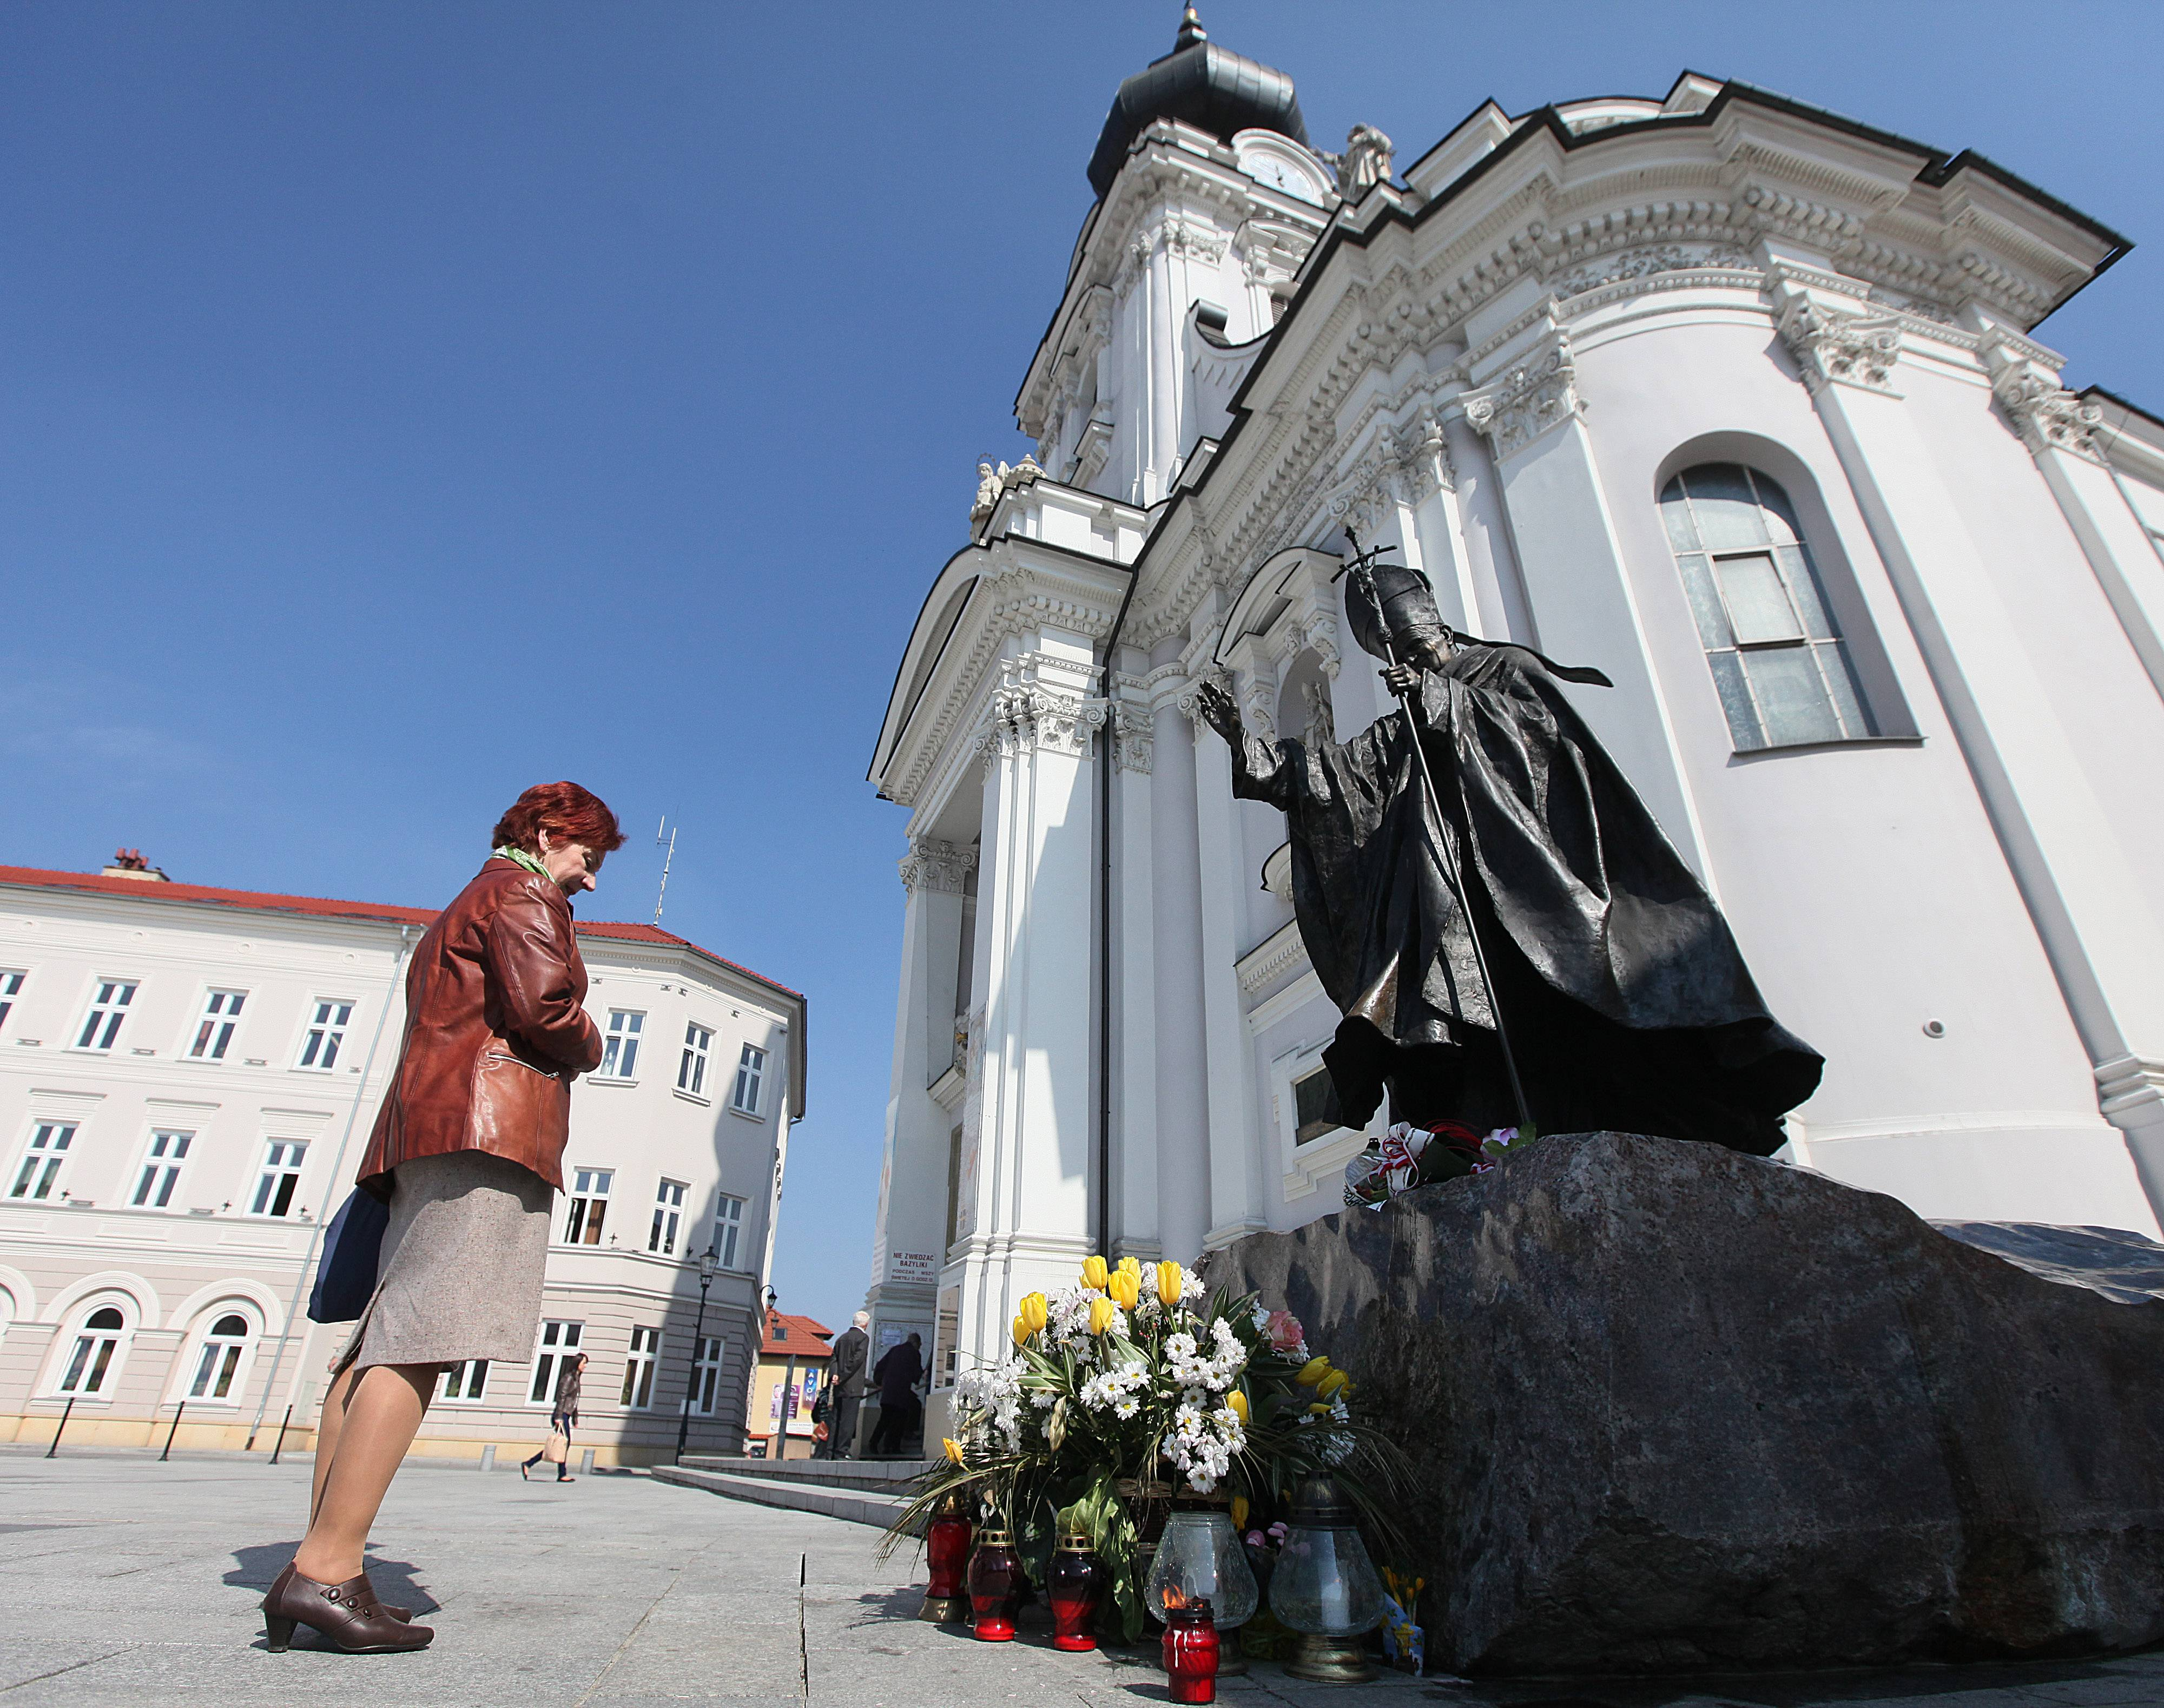 A woman stands in front of the figure of blessed Pope John Paul II before the Holy Mary' Offering Basilica where he was baptized as an infant in Wadowice, Poland, on Monday, April 7, 2014. The basilica neighbors the house where the pope was born as Karol Wojtyla in 1920 and where a multimedia museum will open in his memory on Wednesday, just over two weeks before he will be made a saint in a Vatican ceremony April 27.